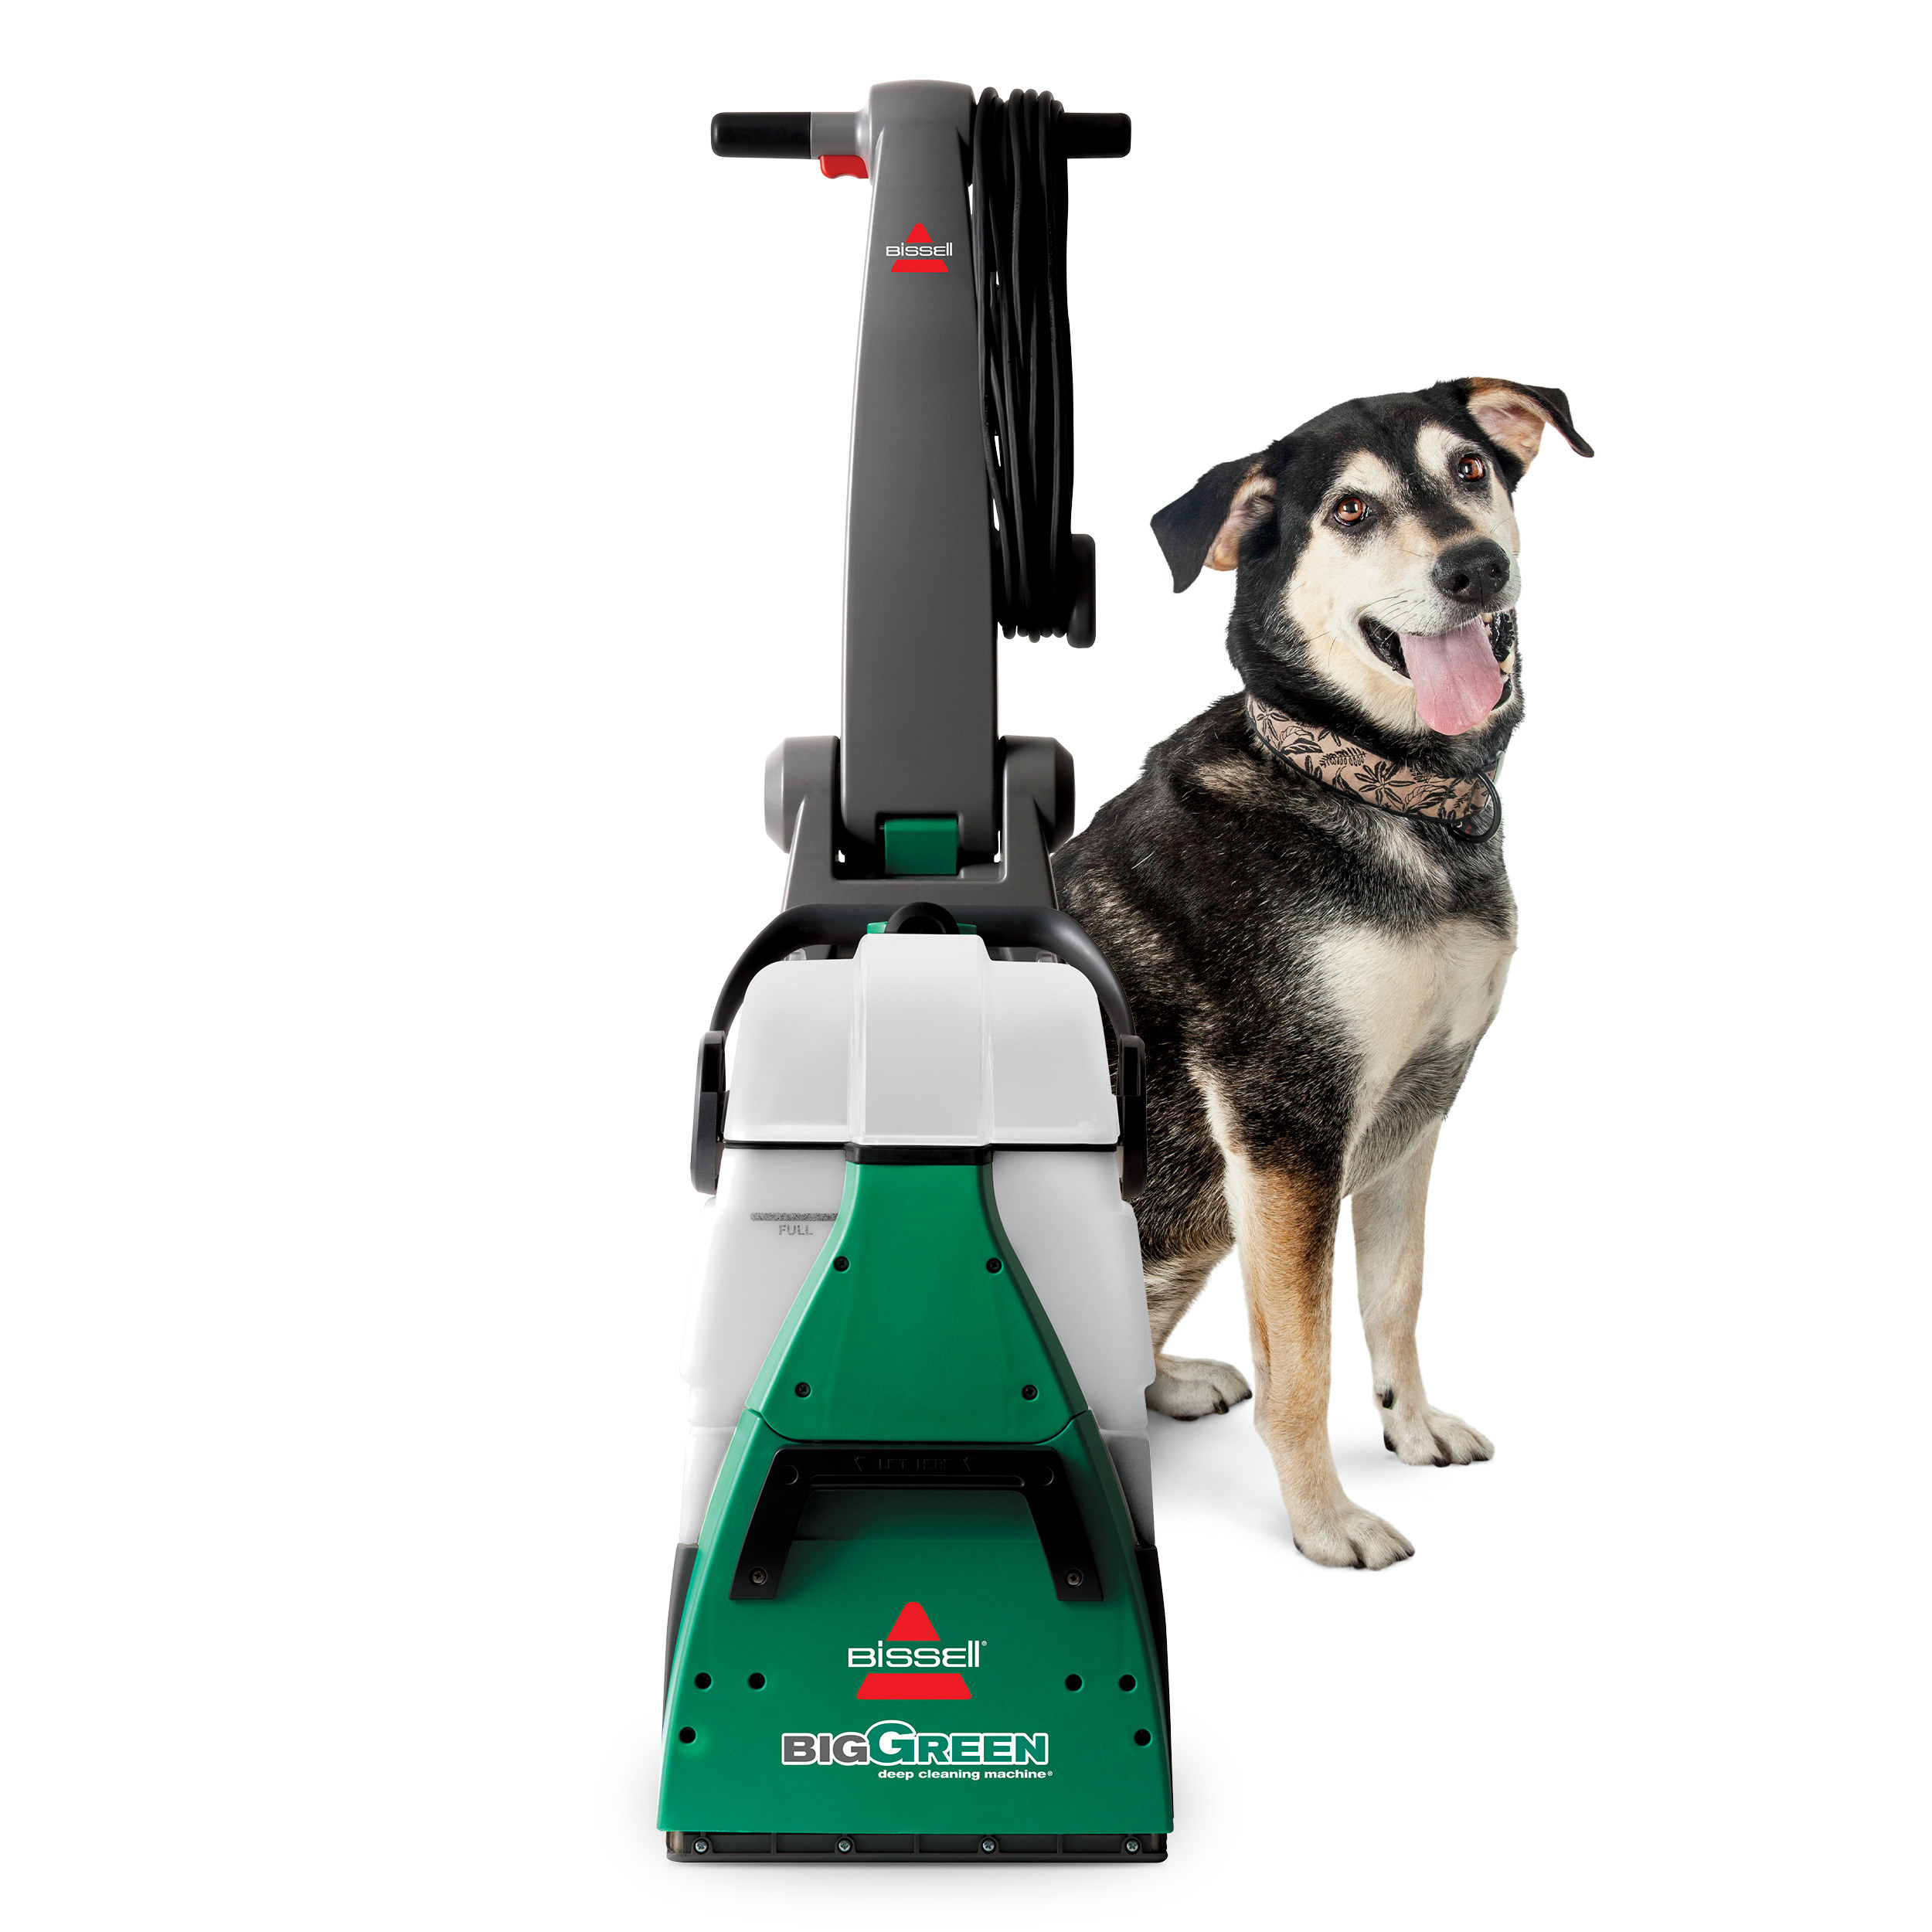 A dog standing next to the carpet cleaner